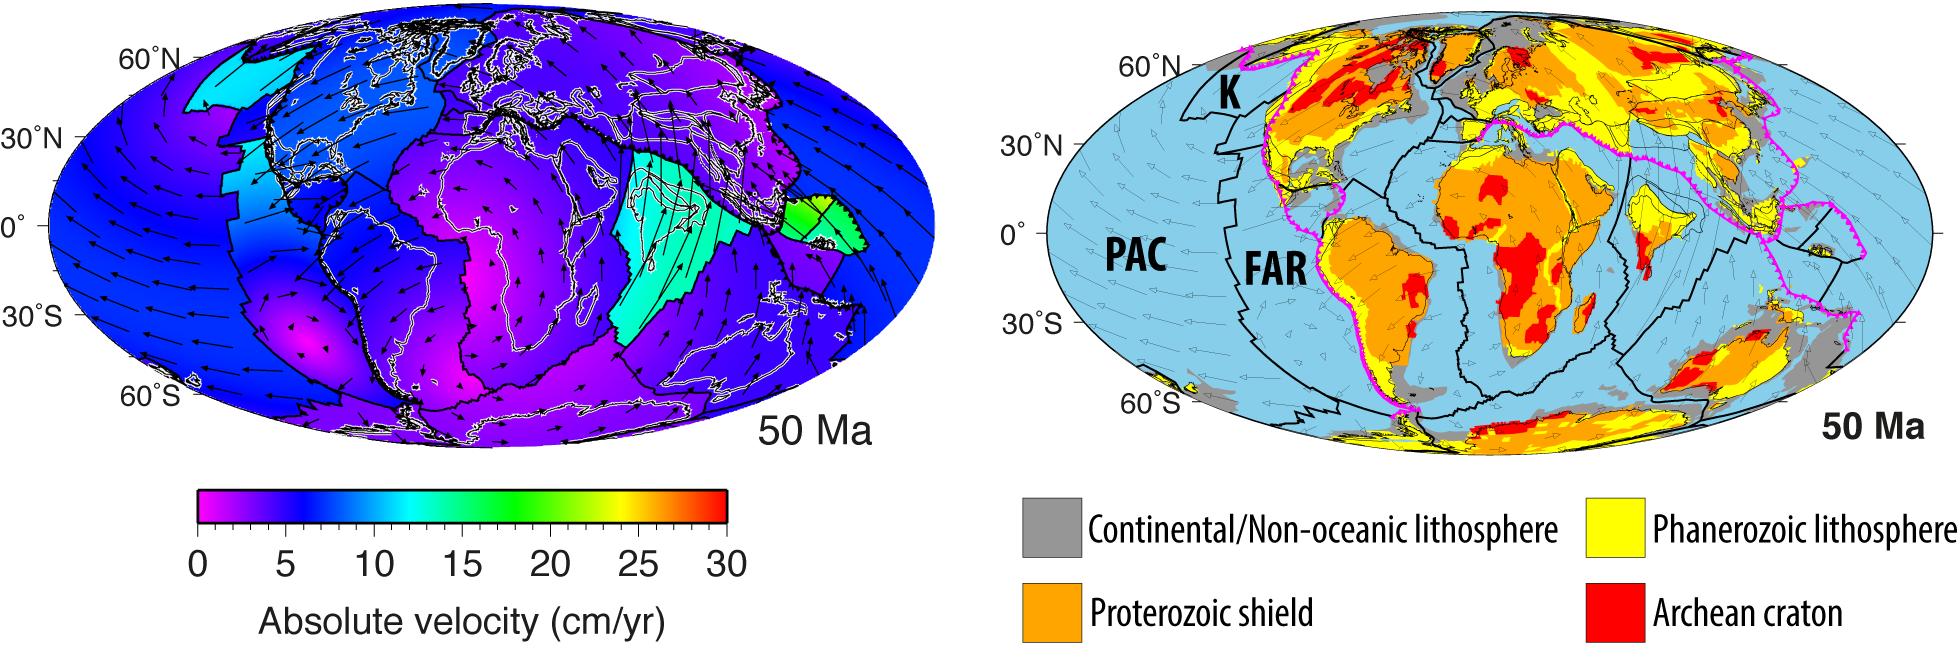 Tectonic speed limits from plate kinematic reconstructions